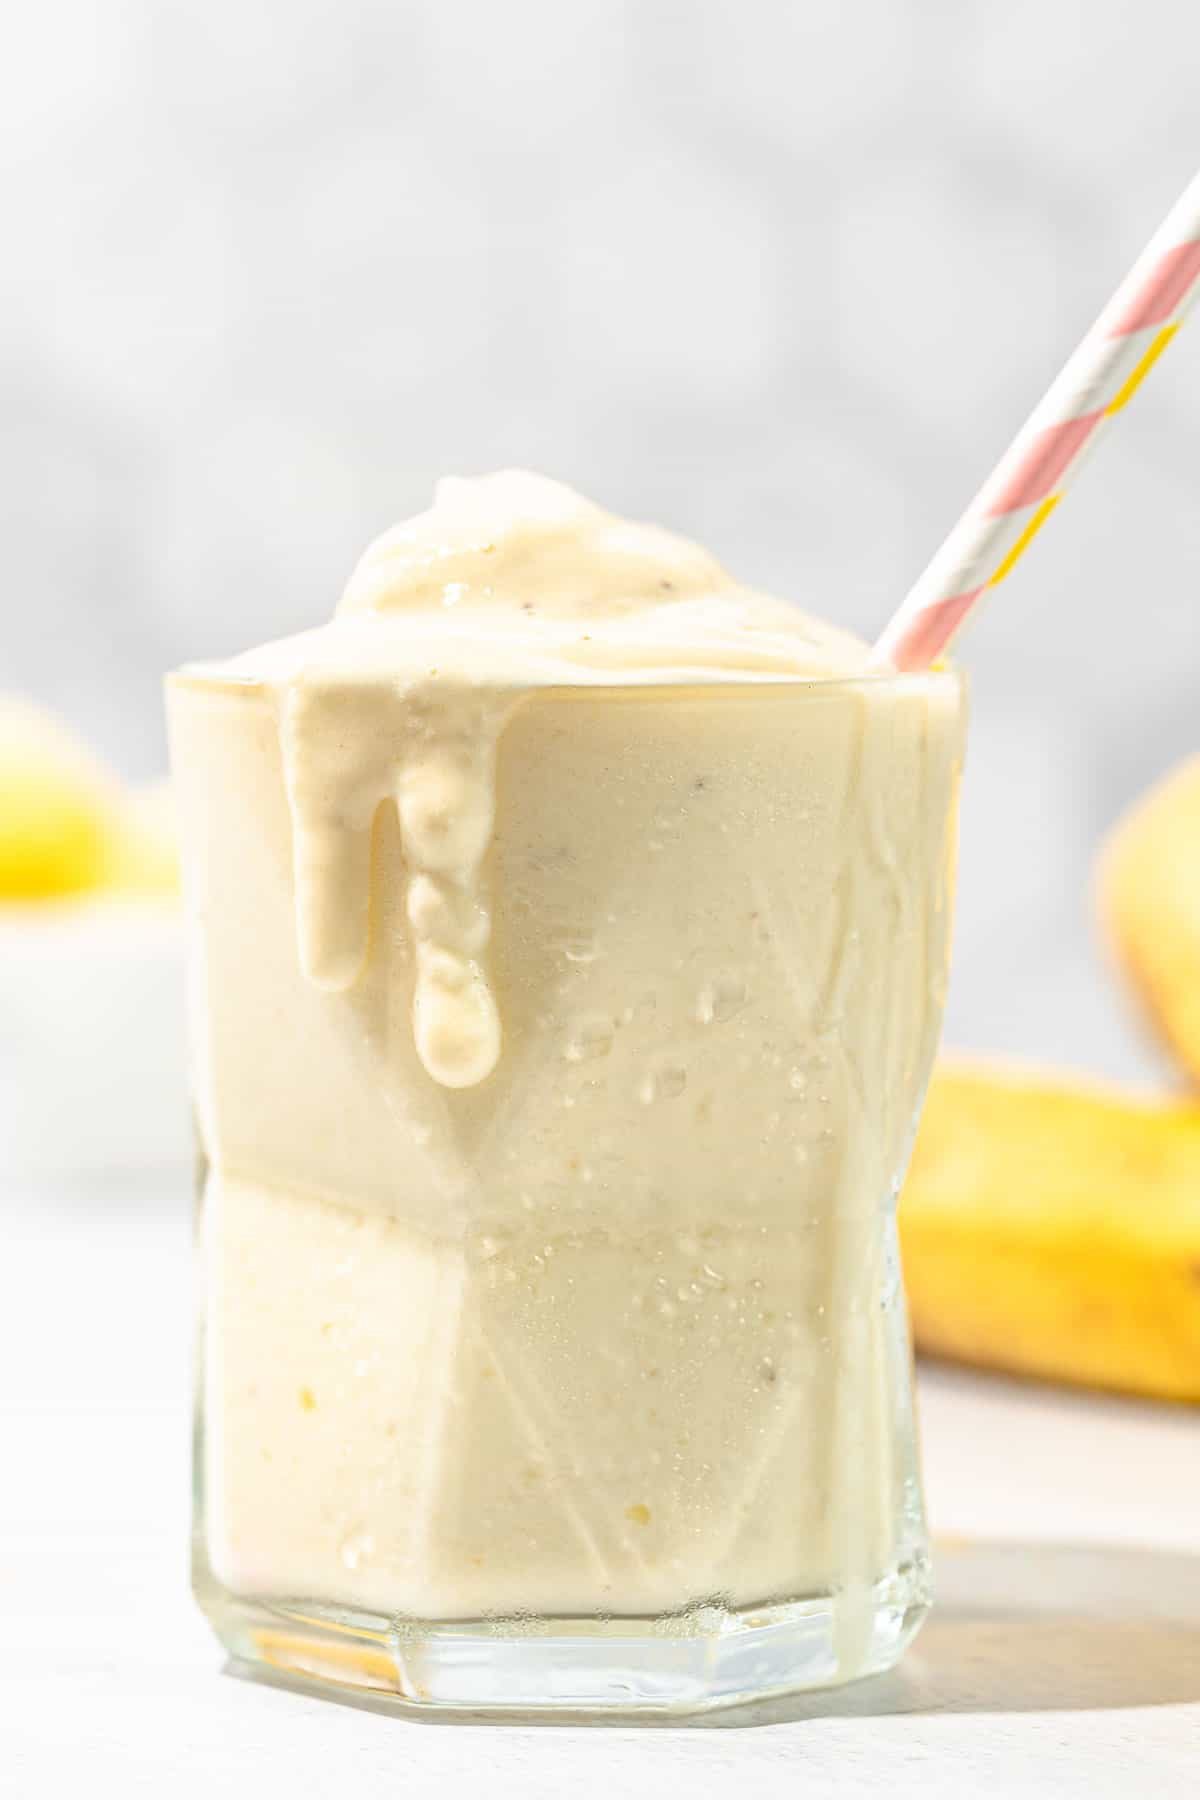 pineapple banana smoothie in short glass with pink straw